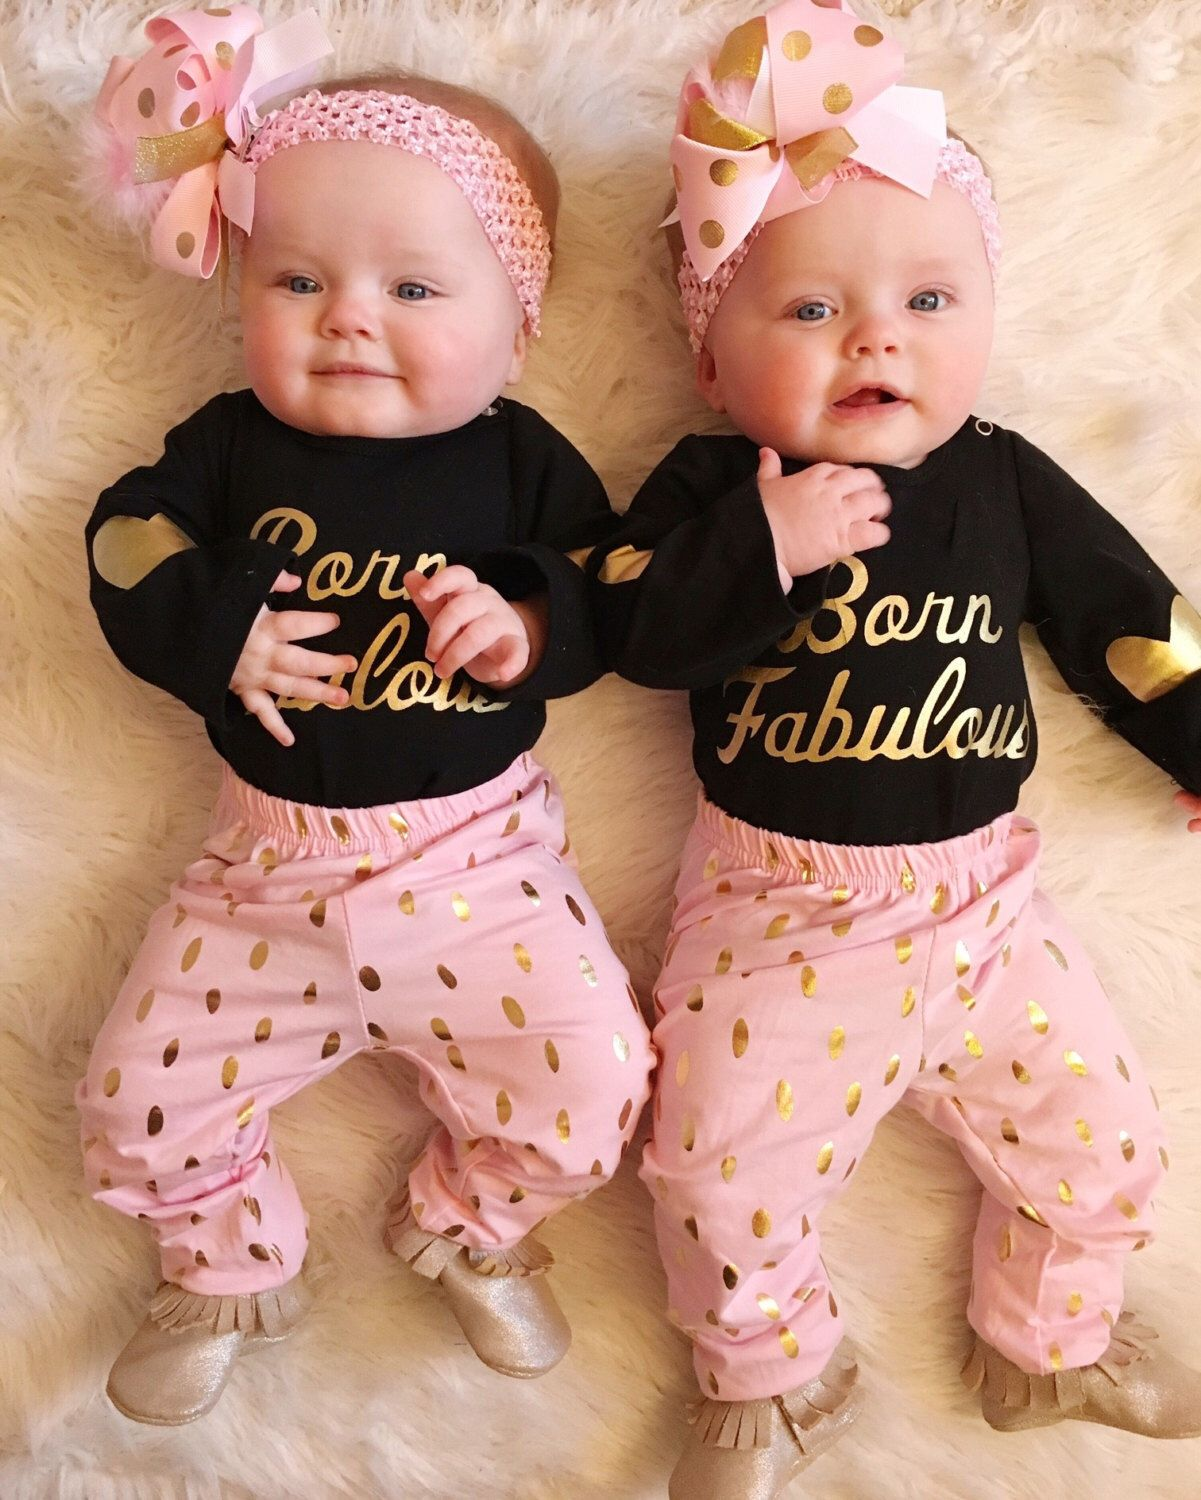 Born Fabulous Outfit, Boutique Outfit, Newborn Outfit, Coming Home